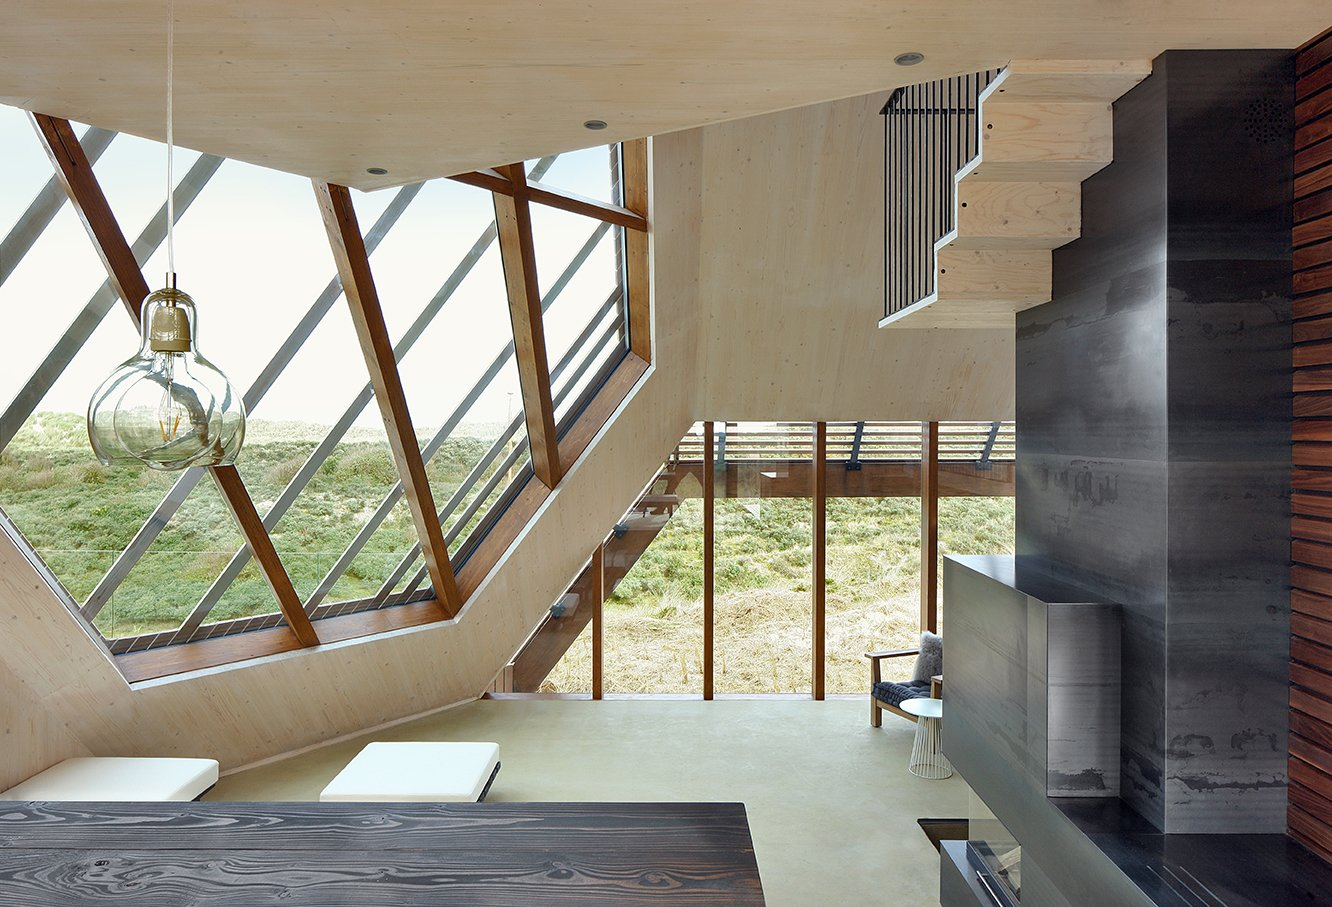 Each room in the interior was carefully curated to reflect the unique function of that space. The interior interacts intimately with the surrounding landscape, as different visual perspectives of the dunes are framed by the geometric facade.  Dune House by Sarah Akkoush